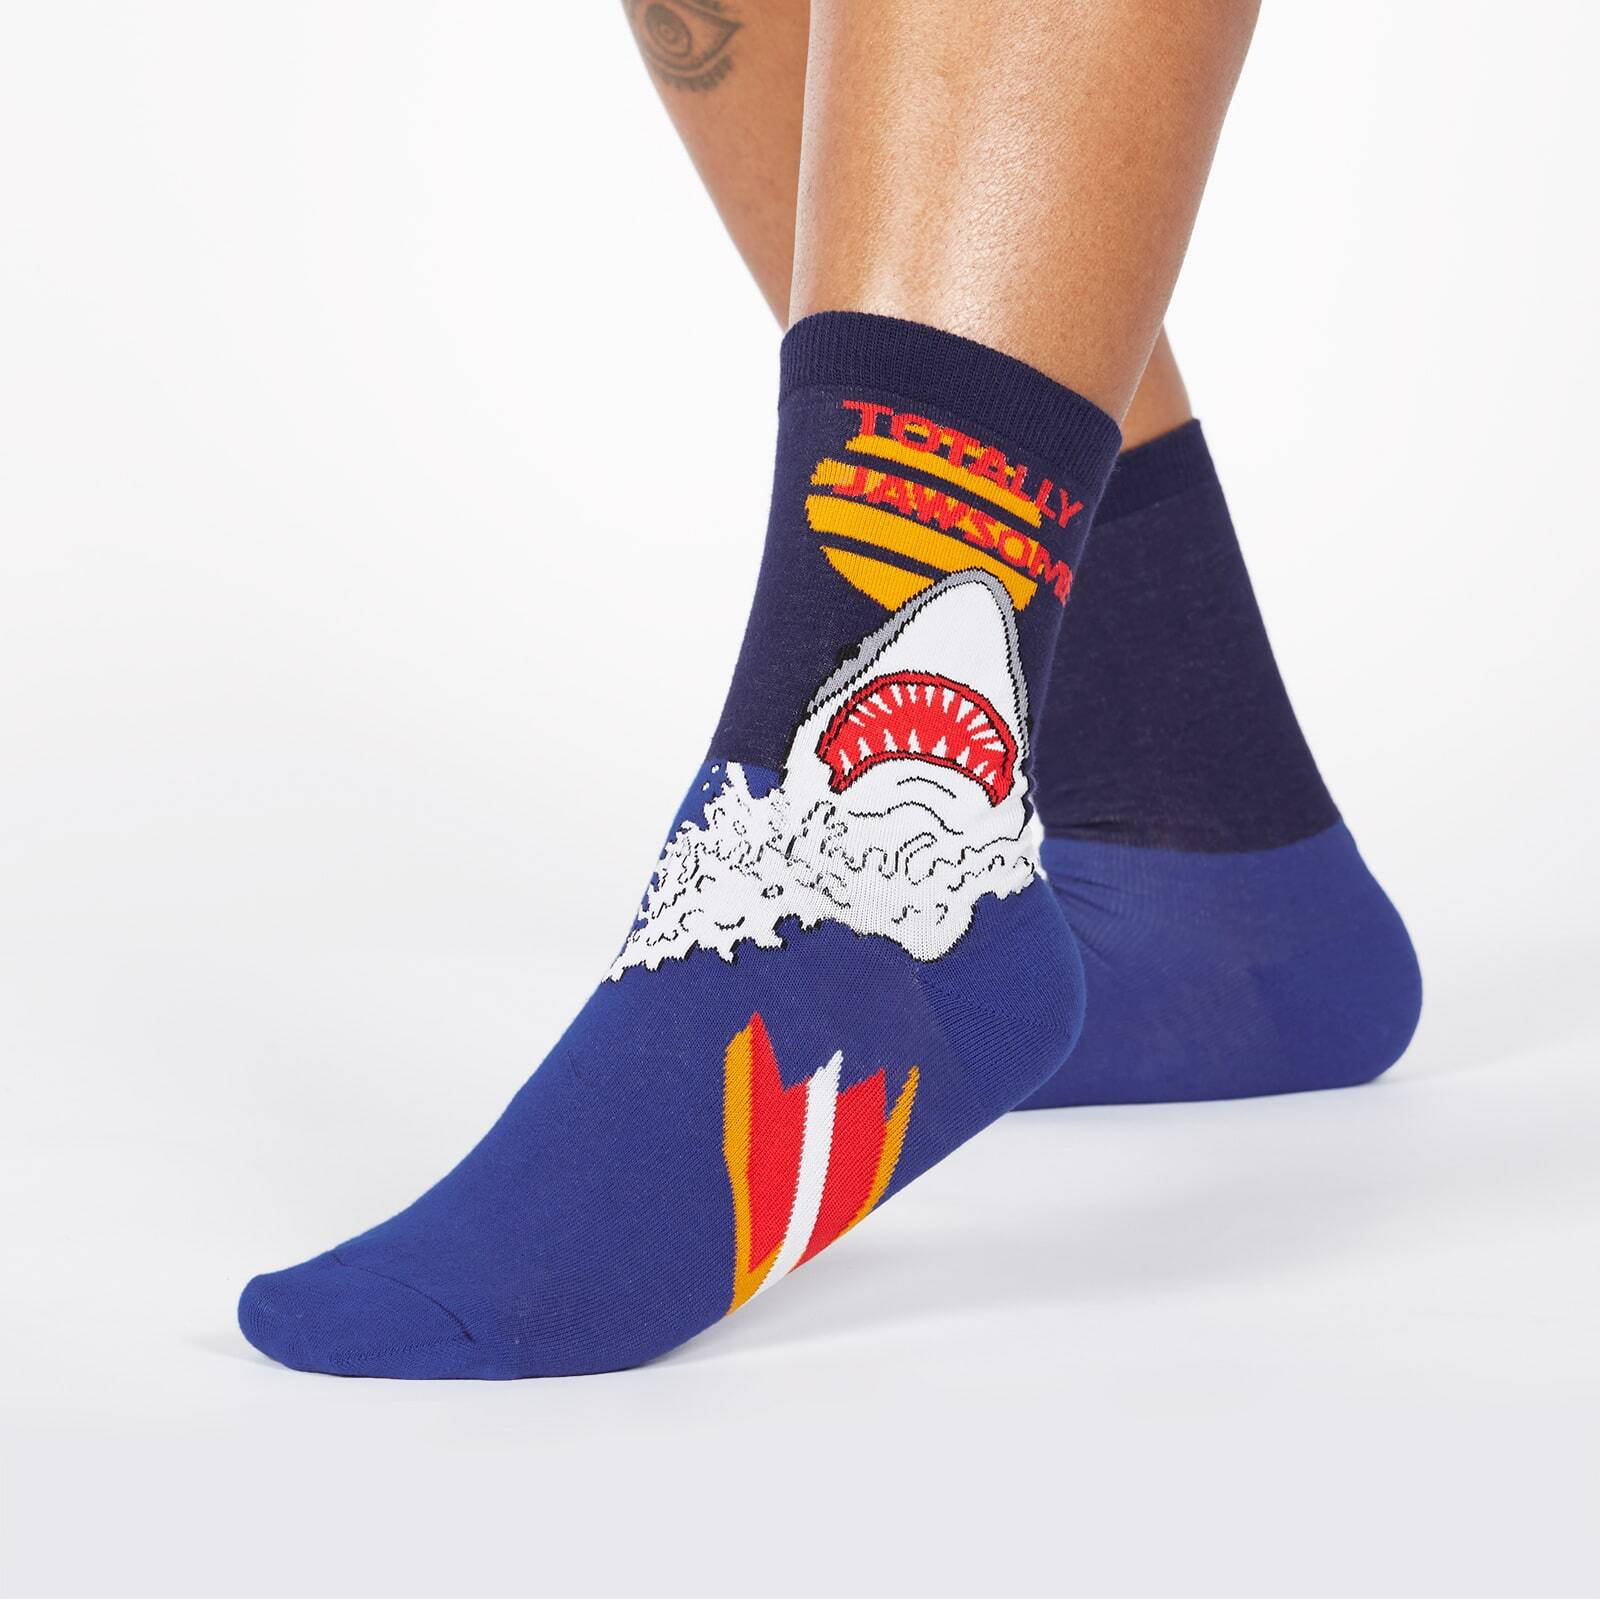 Totally Jawsome! Crew Socks